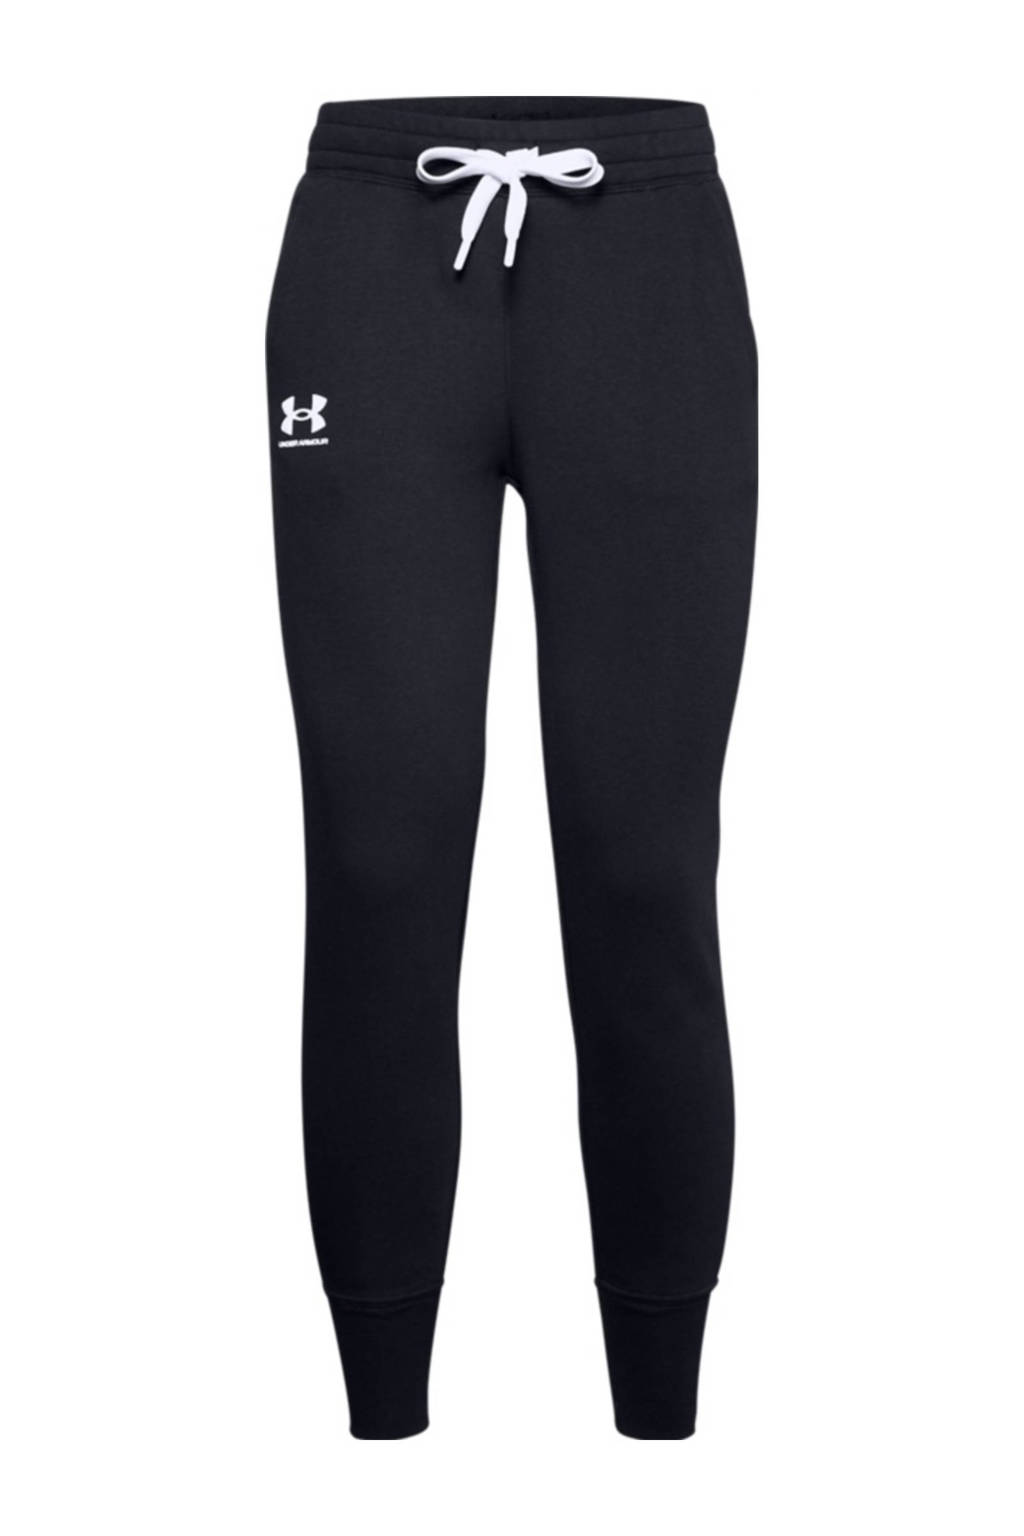 Under Armour sportbroek zwart/wit, Zwart/wit